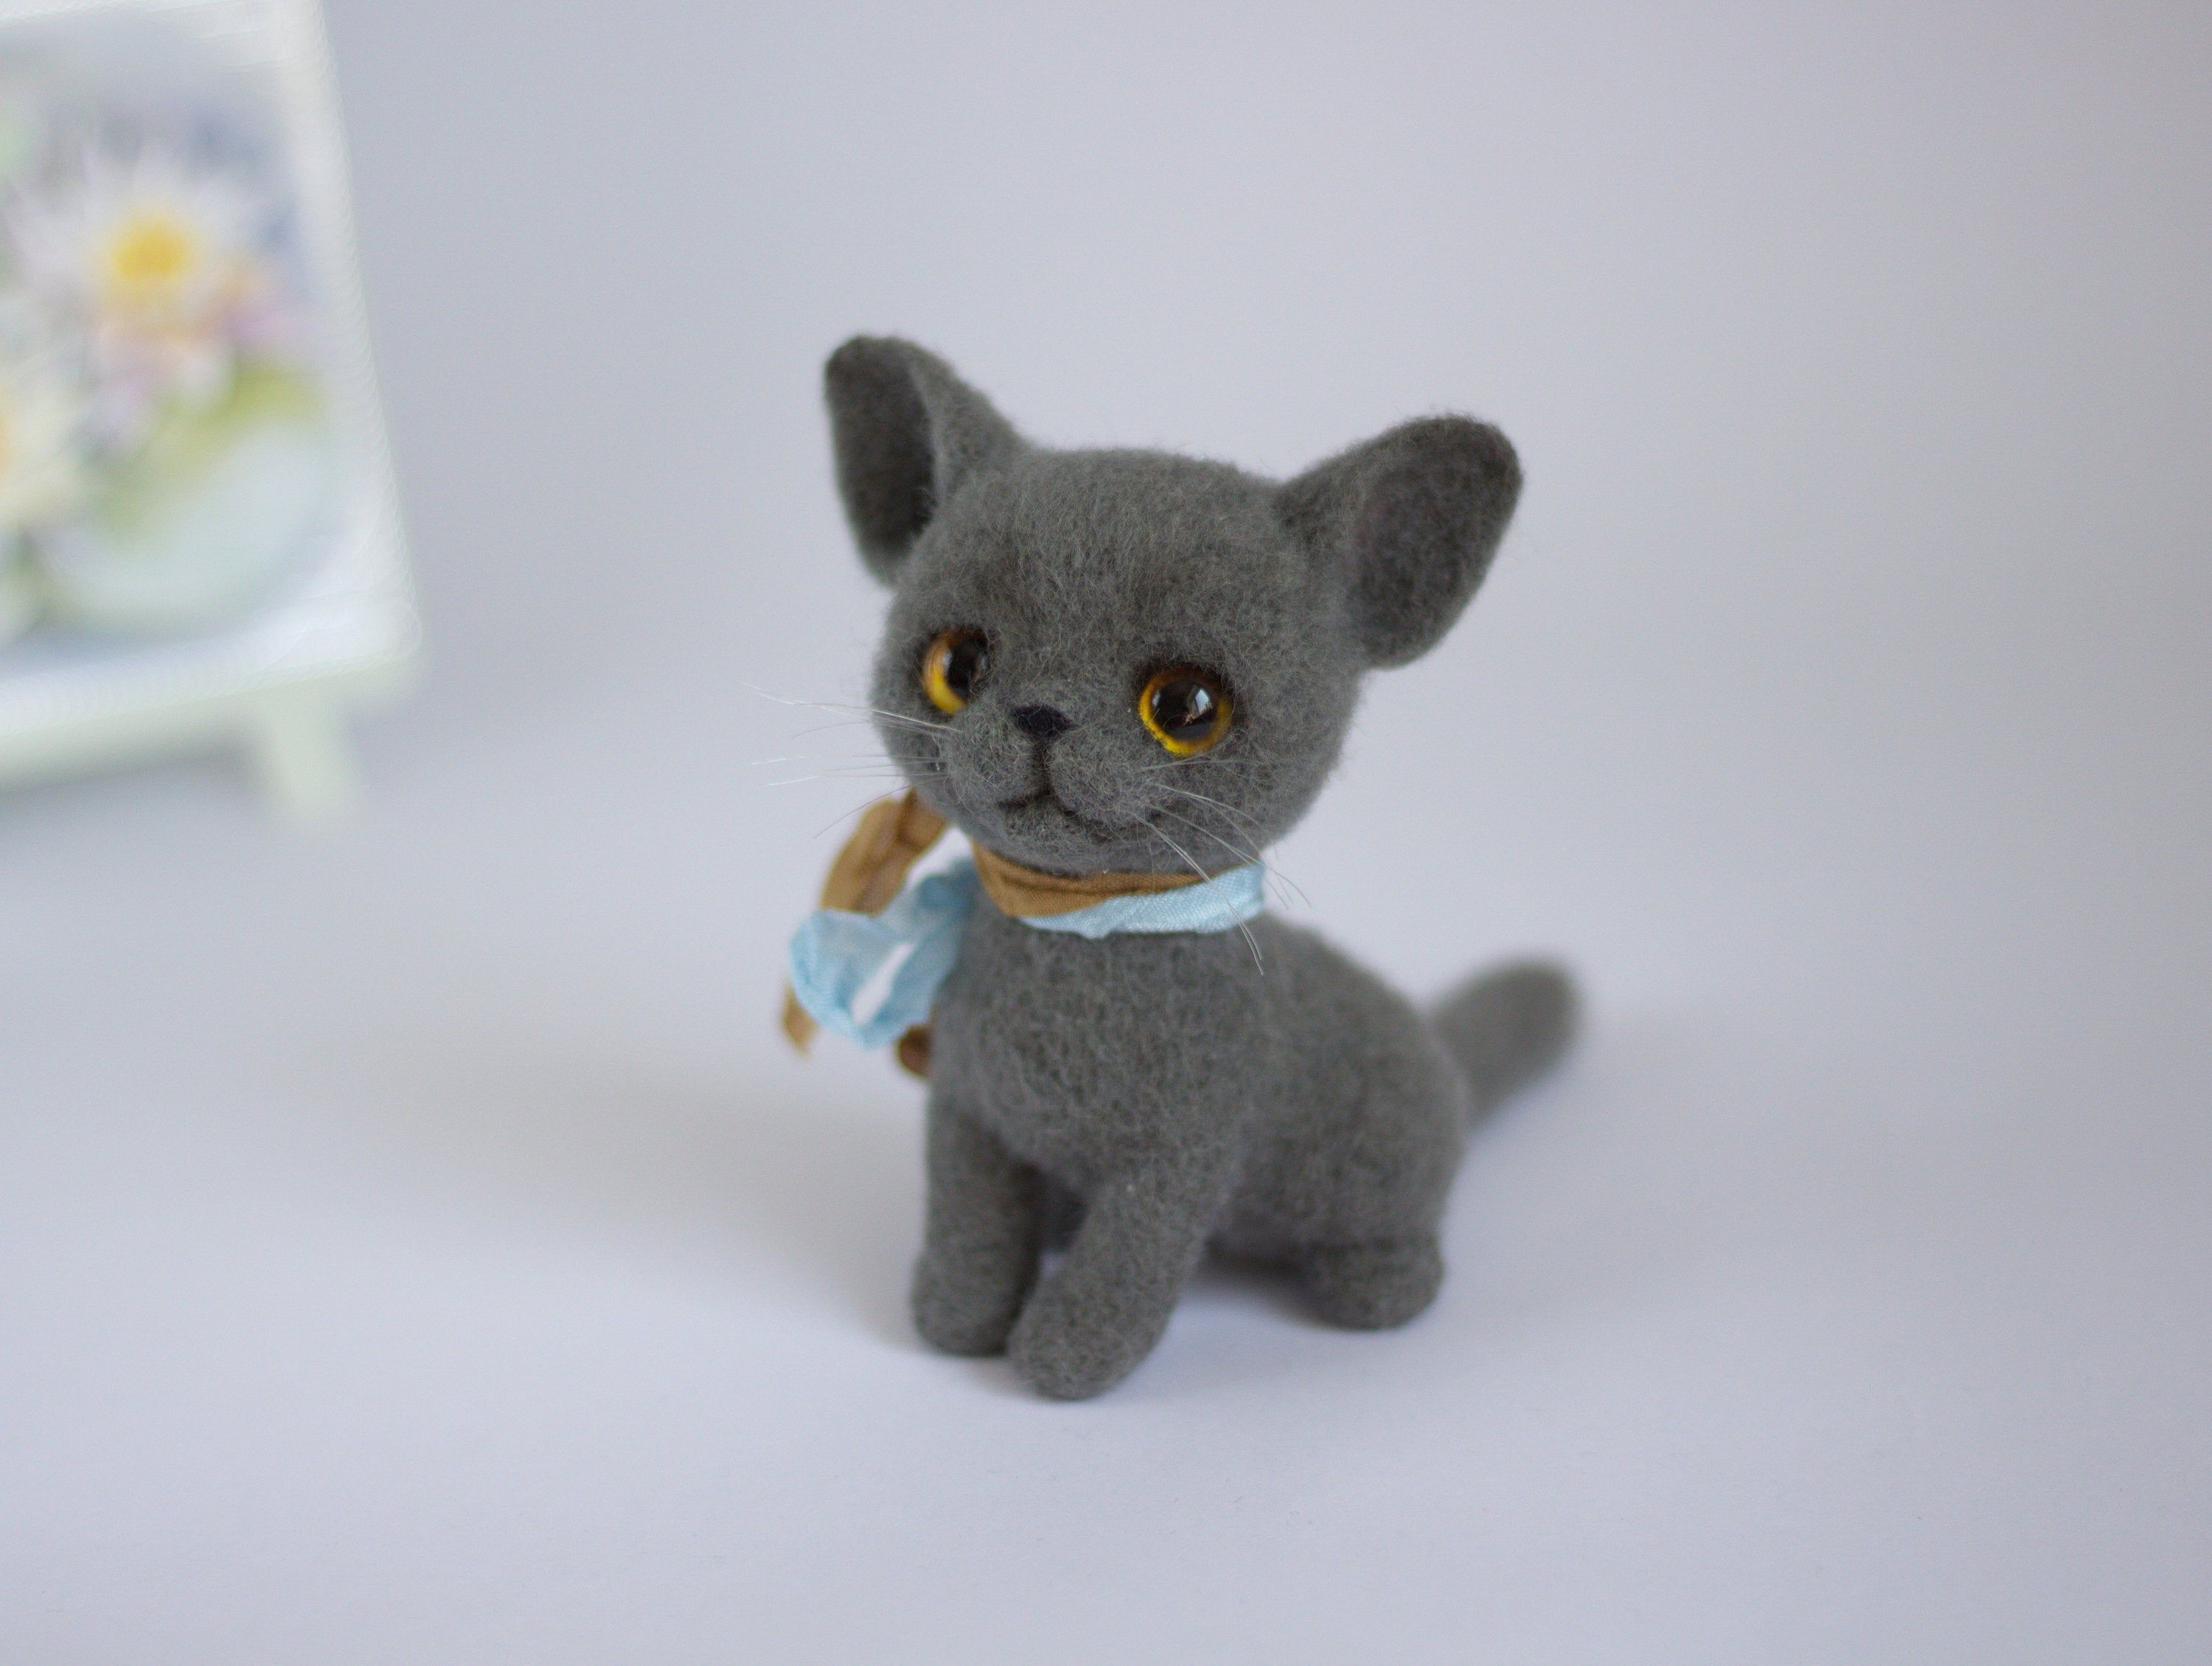 Needle felted gray cat kitten sculpture needle felt animal cat miniature Spring felted cat mini little cat wool cute cat gift #needlefeltedcat Needle felted gray cat kitten sculpture needle felt animal cat miniature Spring felted cat mini little cat wool cute cat gift #needlefeltedcat